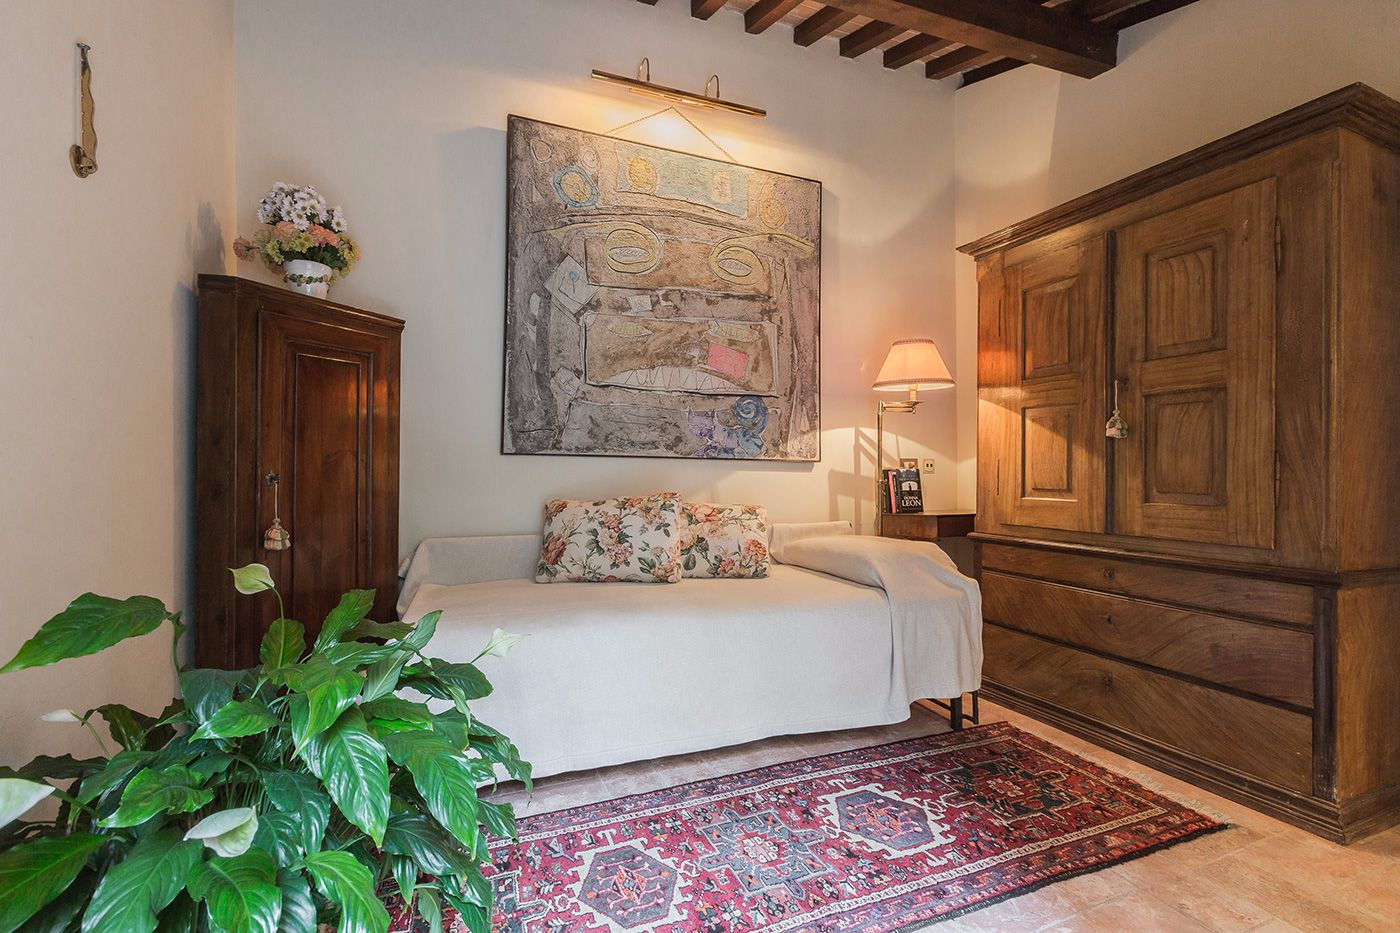 the lovely Dependance is furnished with a single bed and a wardrobe